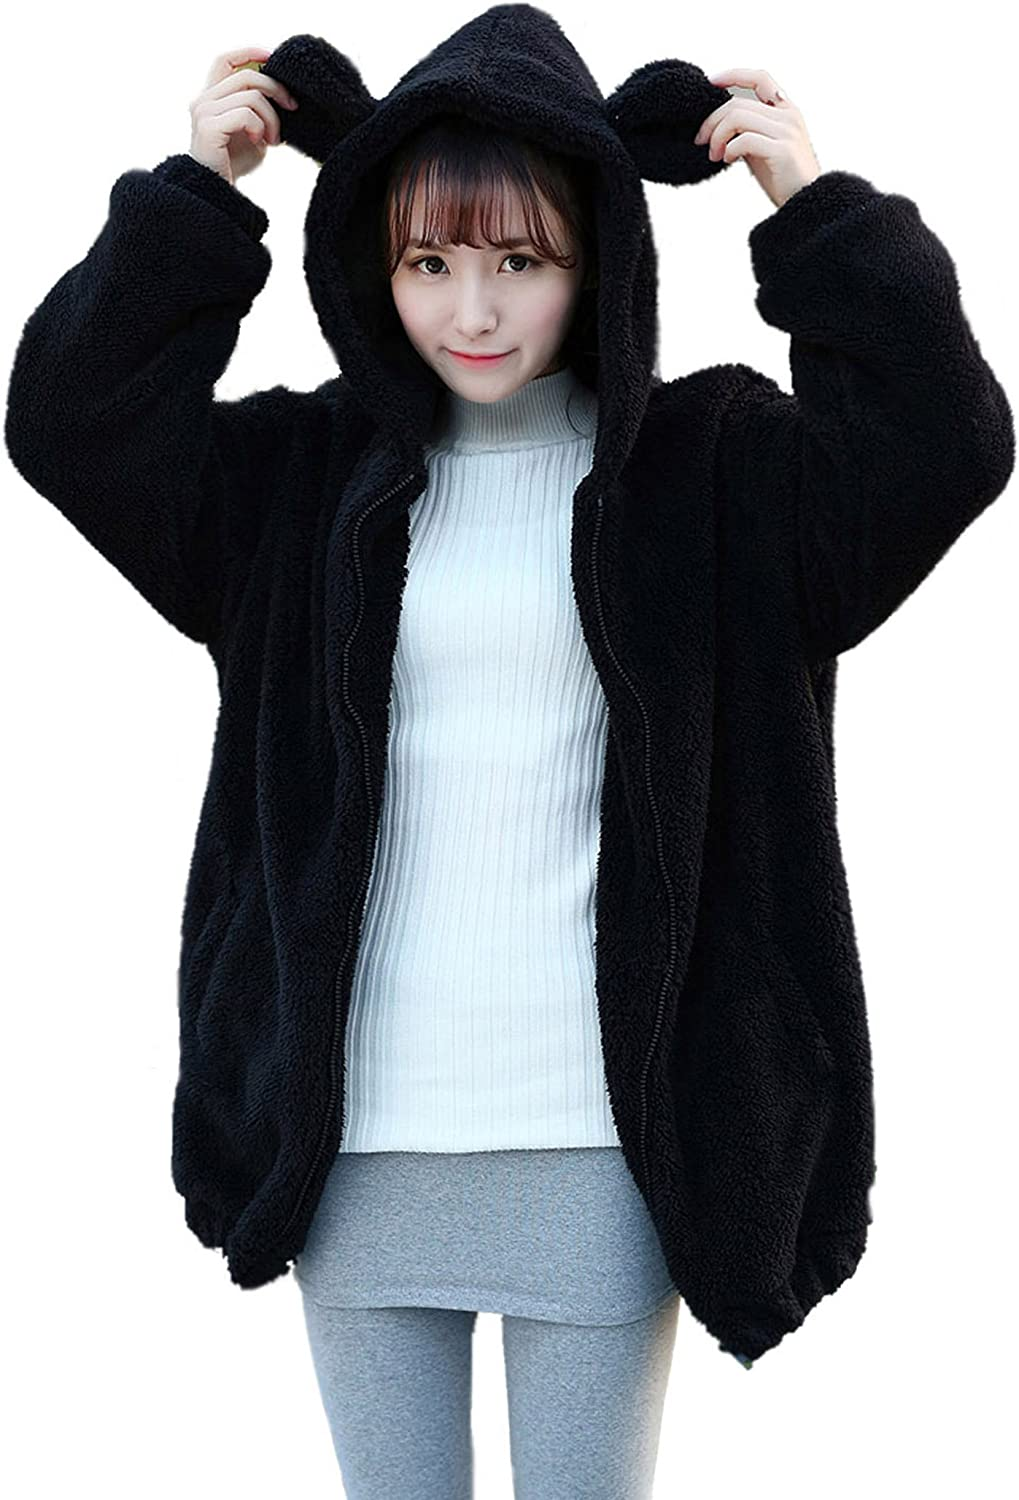 Women Fashion Bear Hoodies with Ears and Tail, Fluffy Double Vel